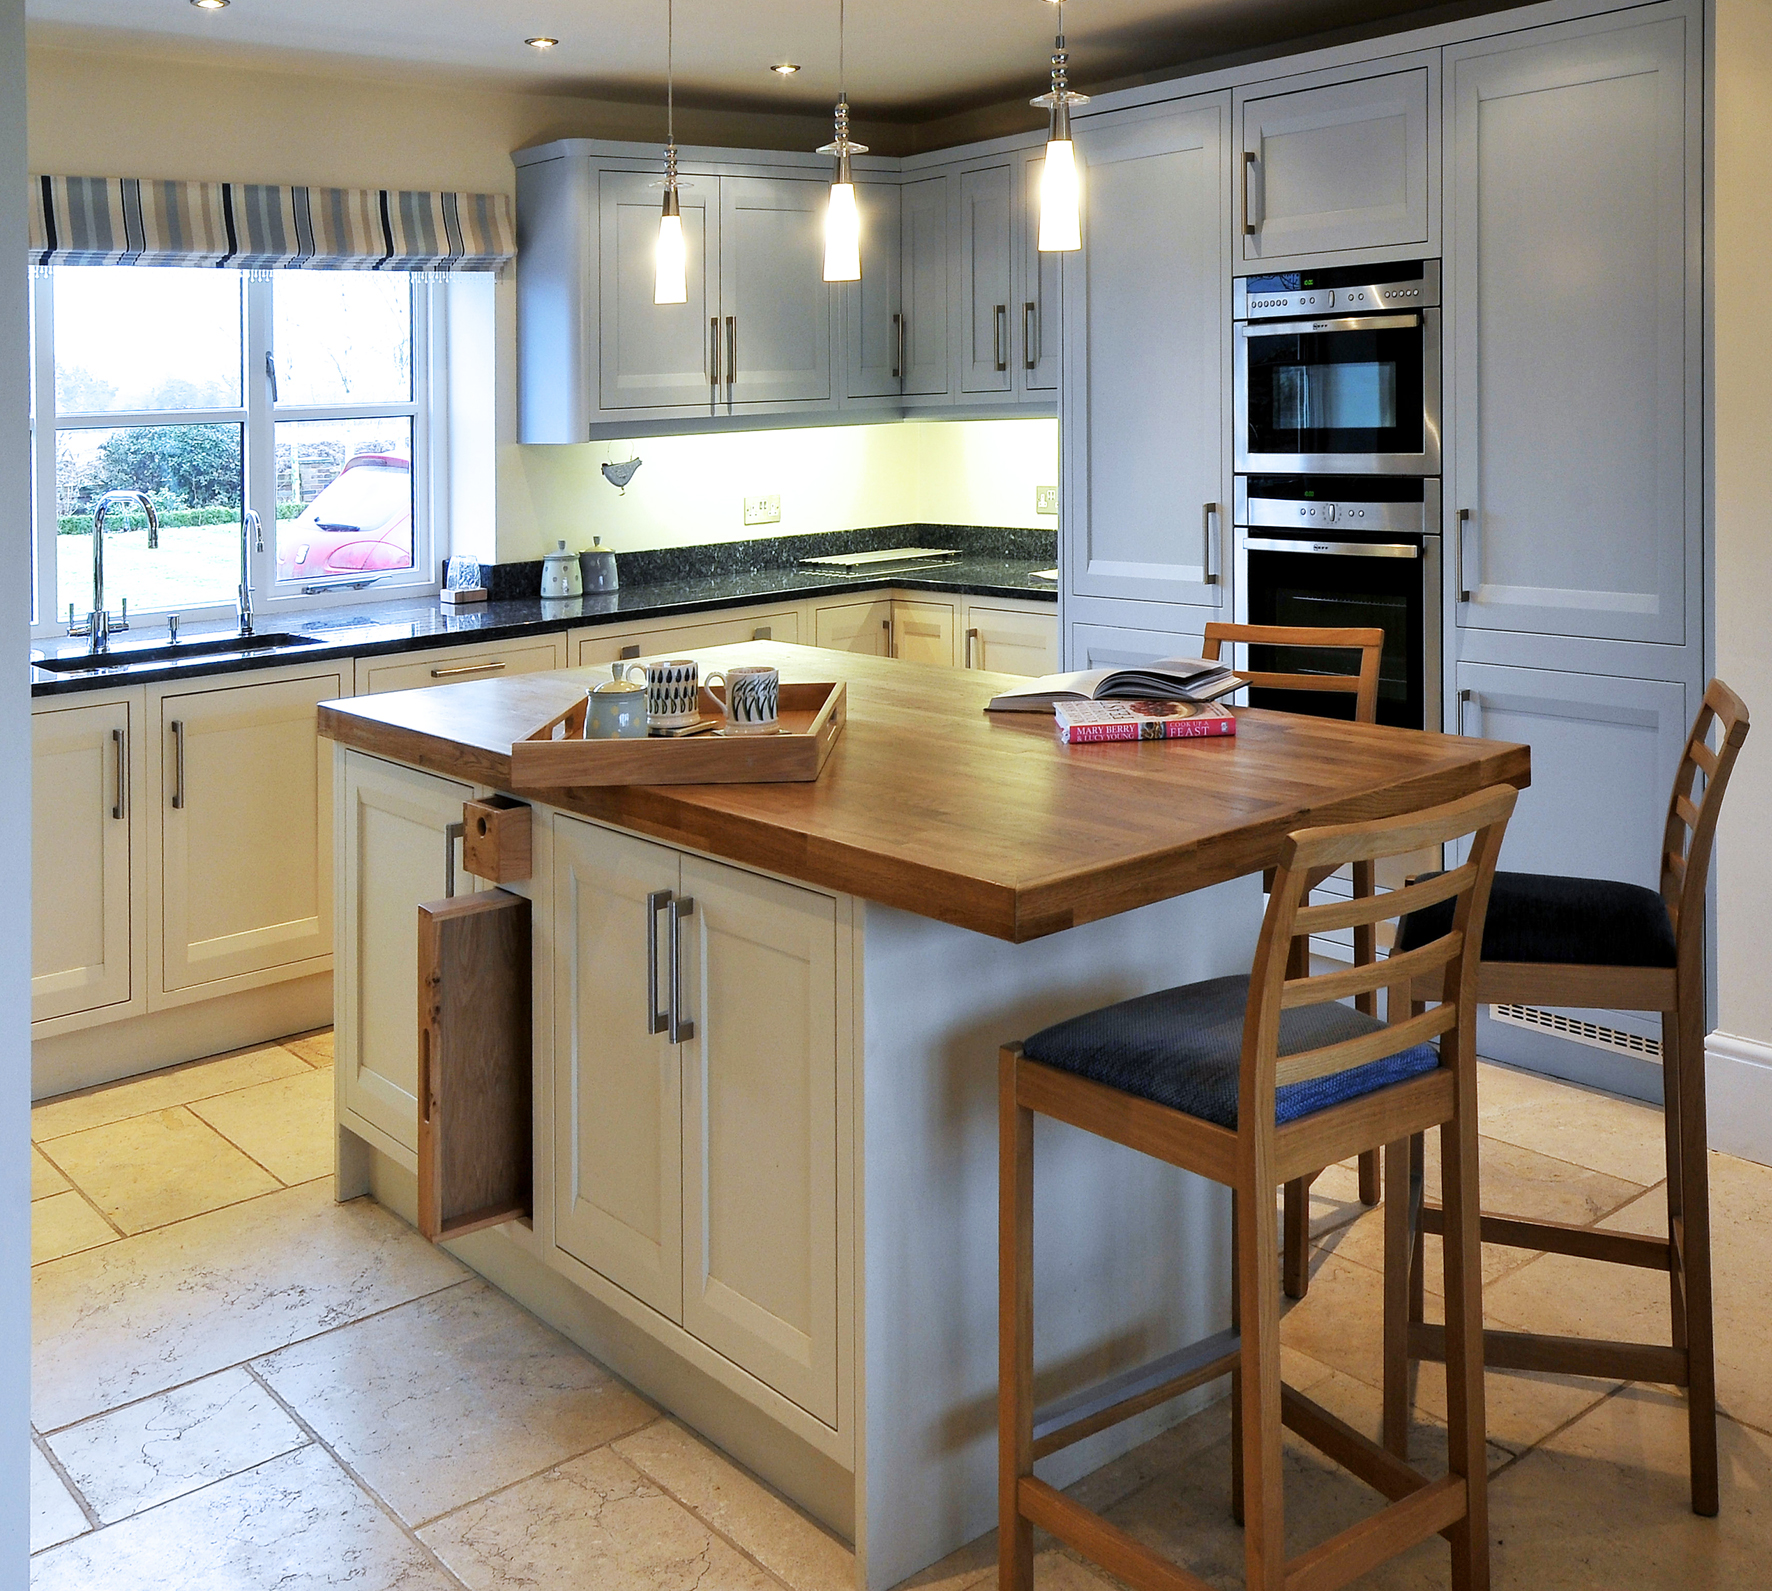 Scammell Interiors Kitchen Design In York